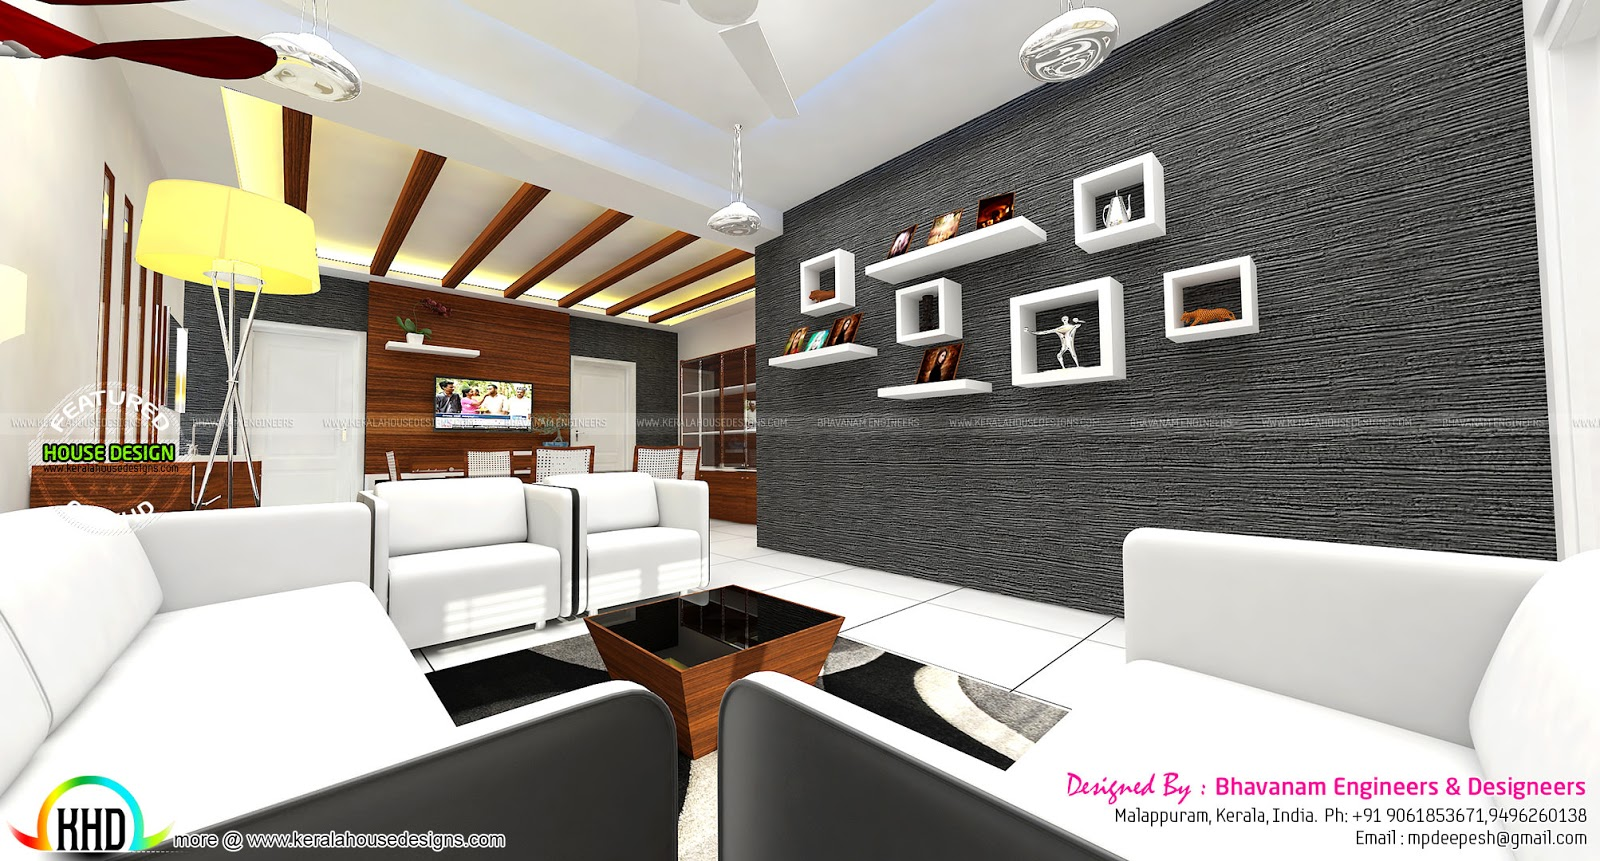 Living room interior decors ideas kerala home design and for Drawing room interior design photos